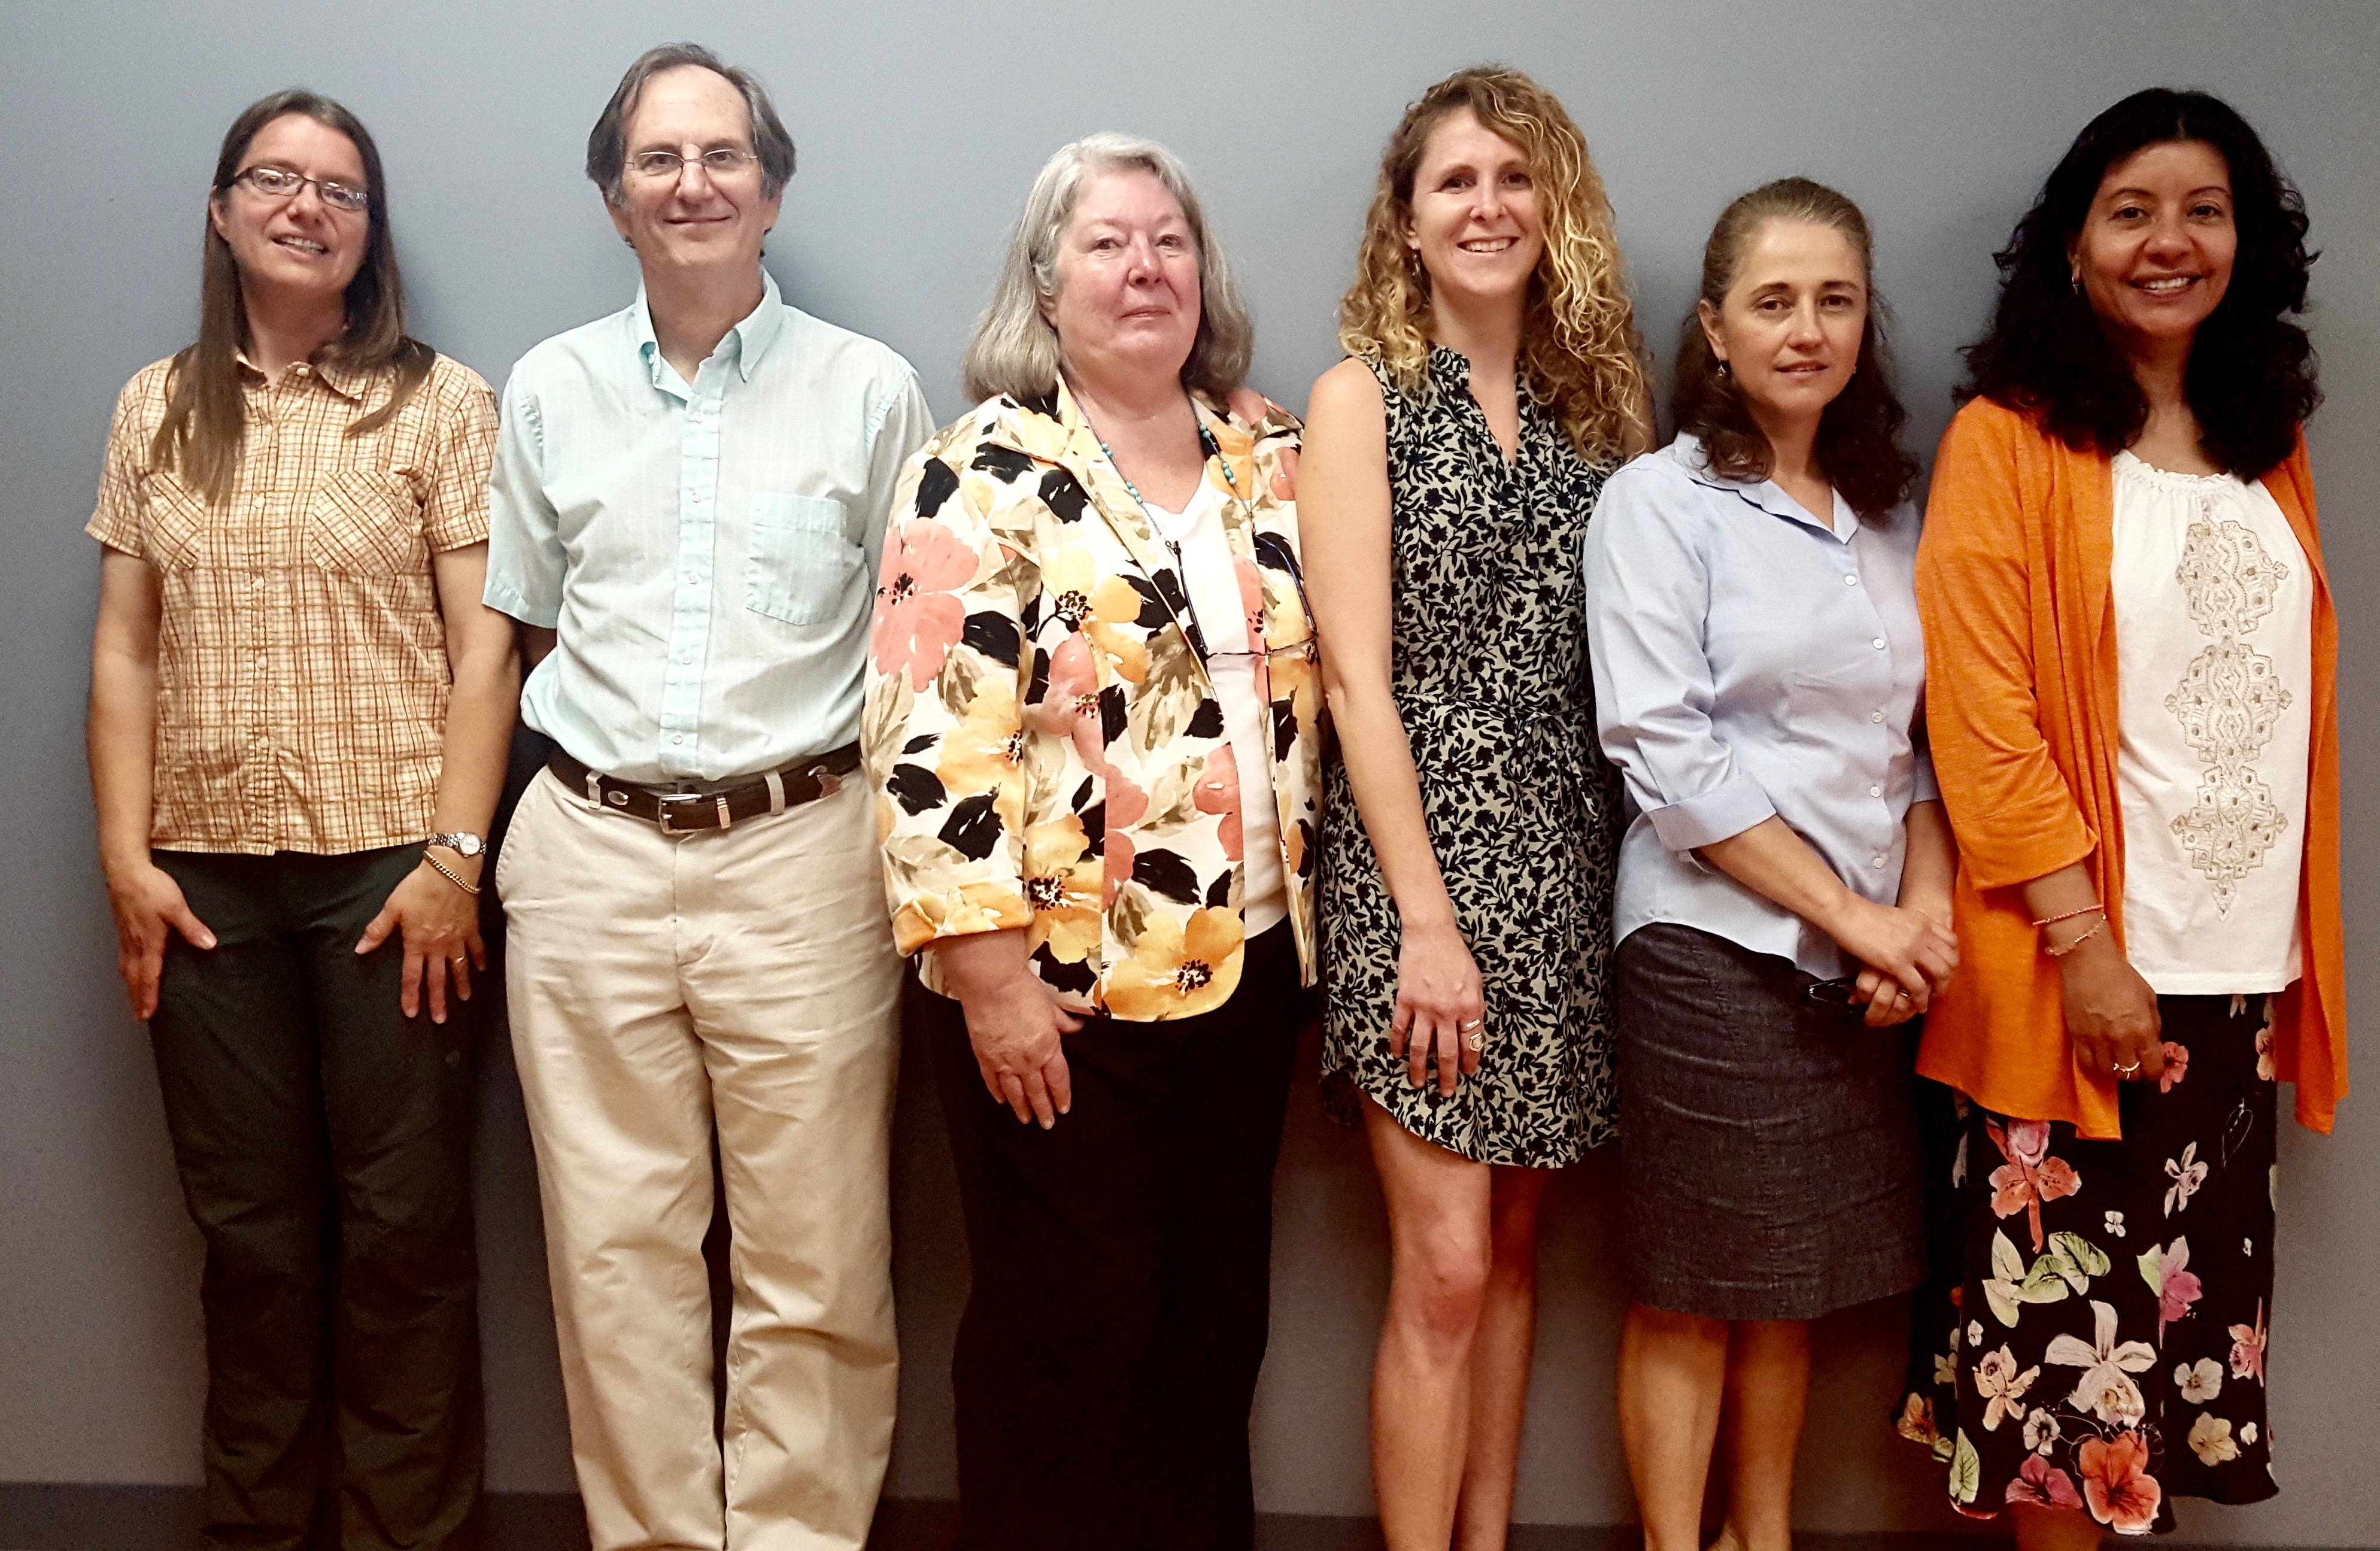 Founded in November 2015, the Fair Housing Project at New Hampshire Legal Assistance now includes seven members: Ruth Heinz, Ben Mortell, Project Director Chris Wellington, Victoria Horrock, Maria Eveleth and Liliana Neumann. (Not pictured, Elliott Berry.)